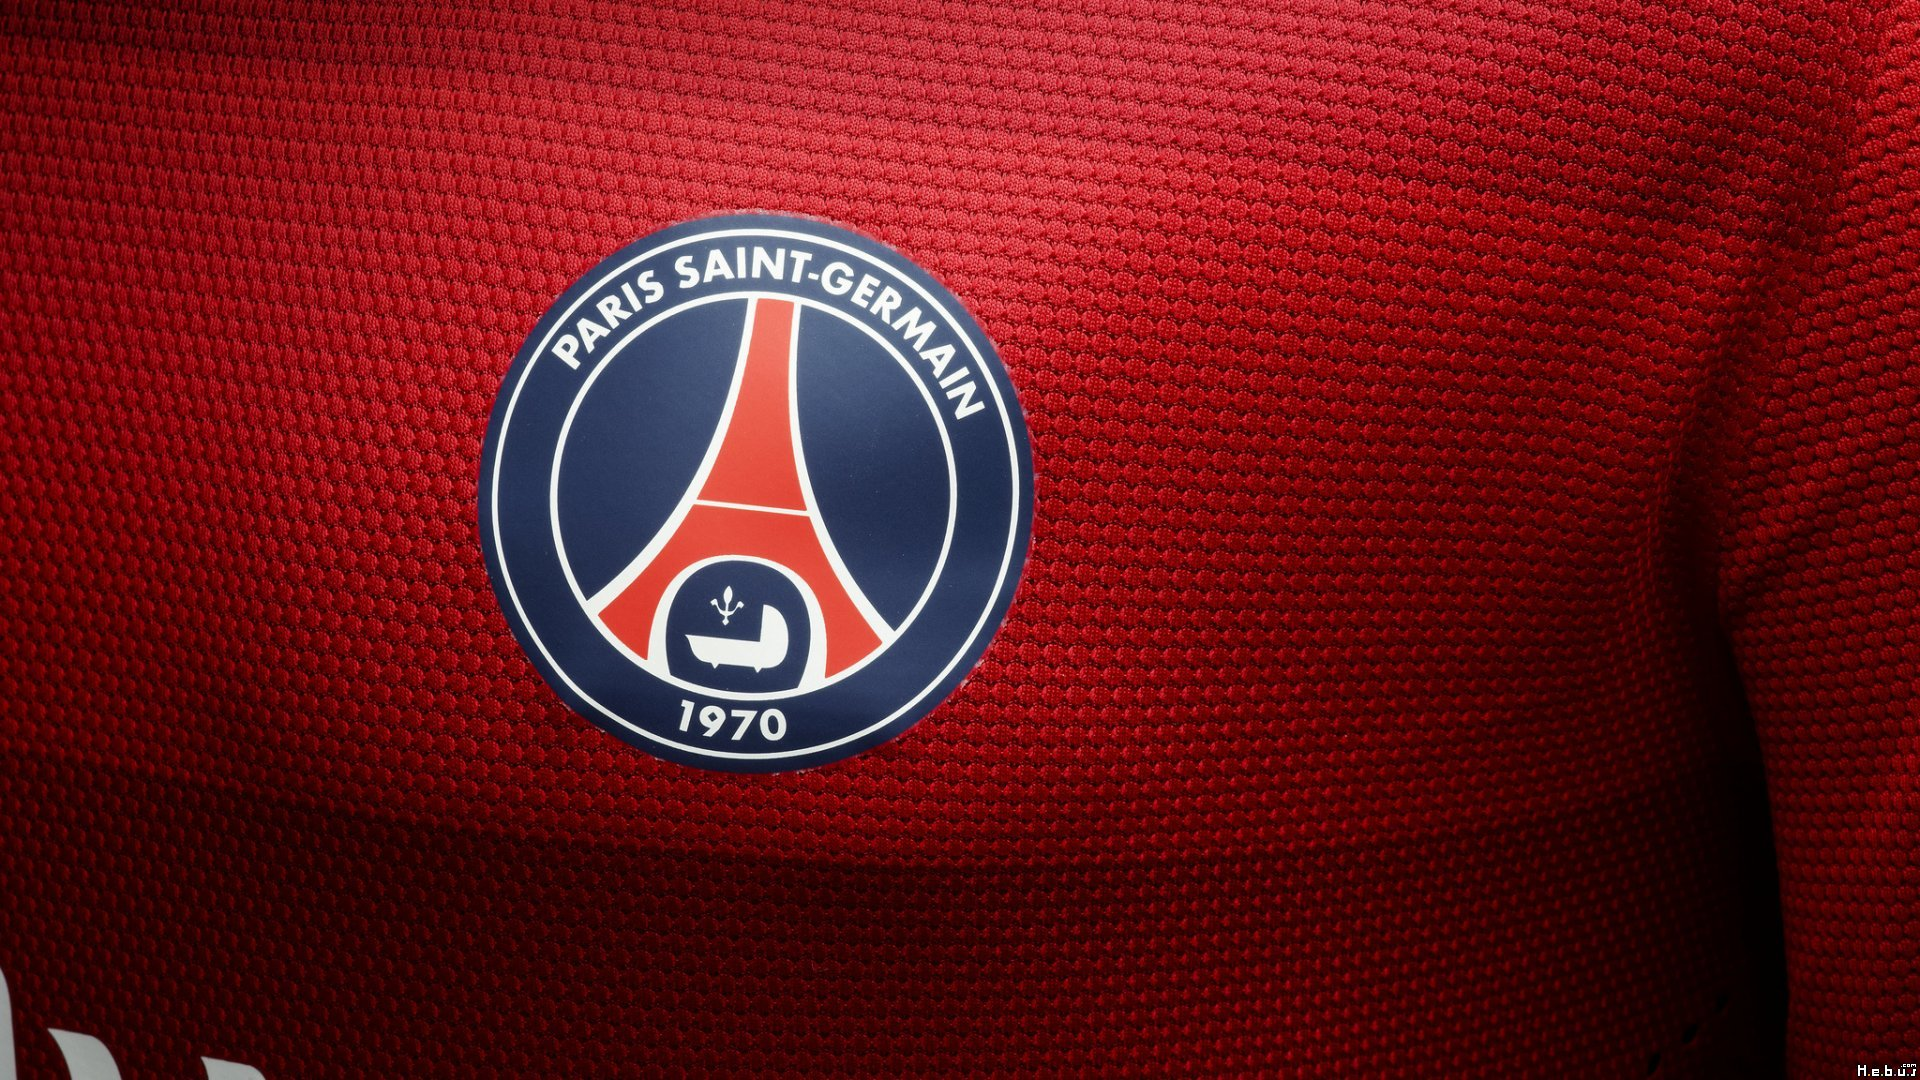 Super Paris Saint Germain Wallpaper